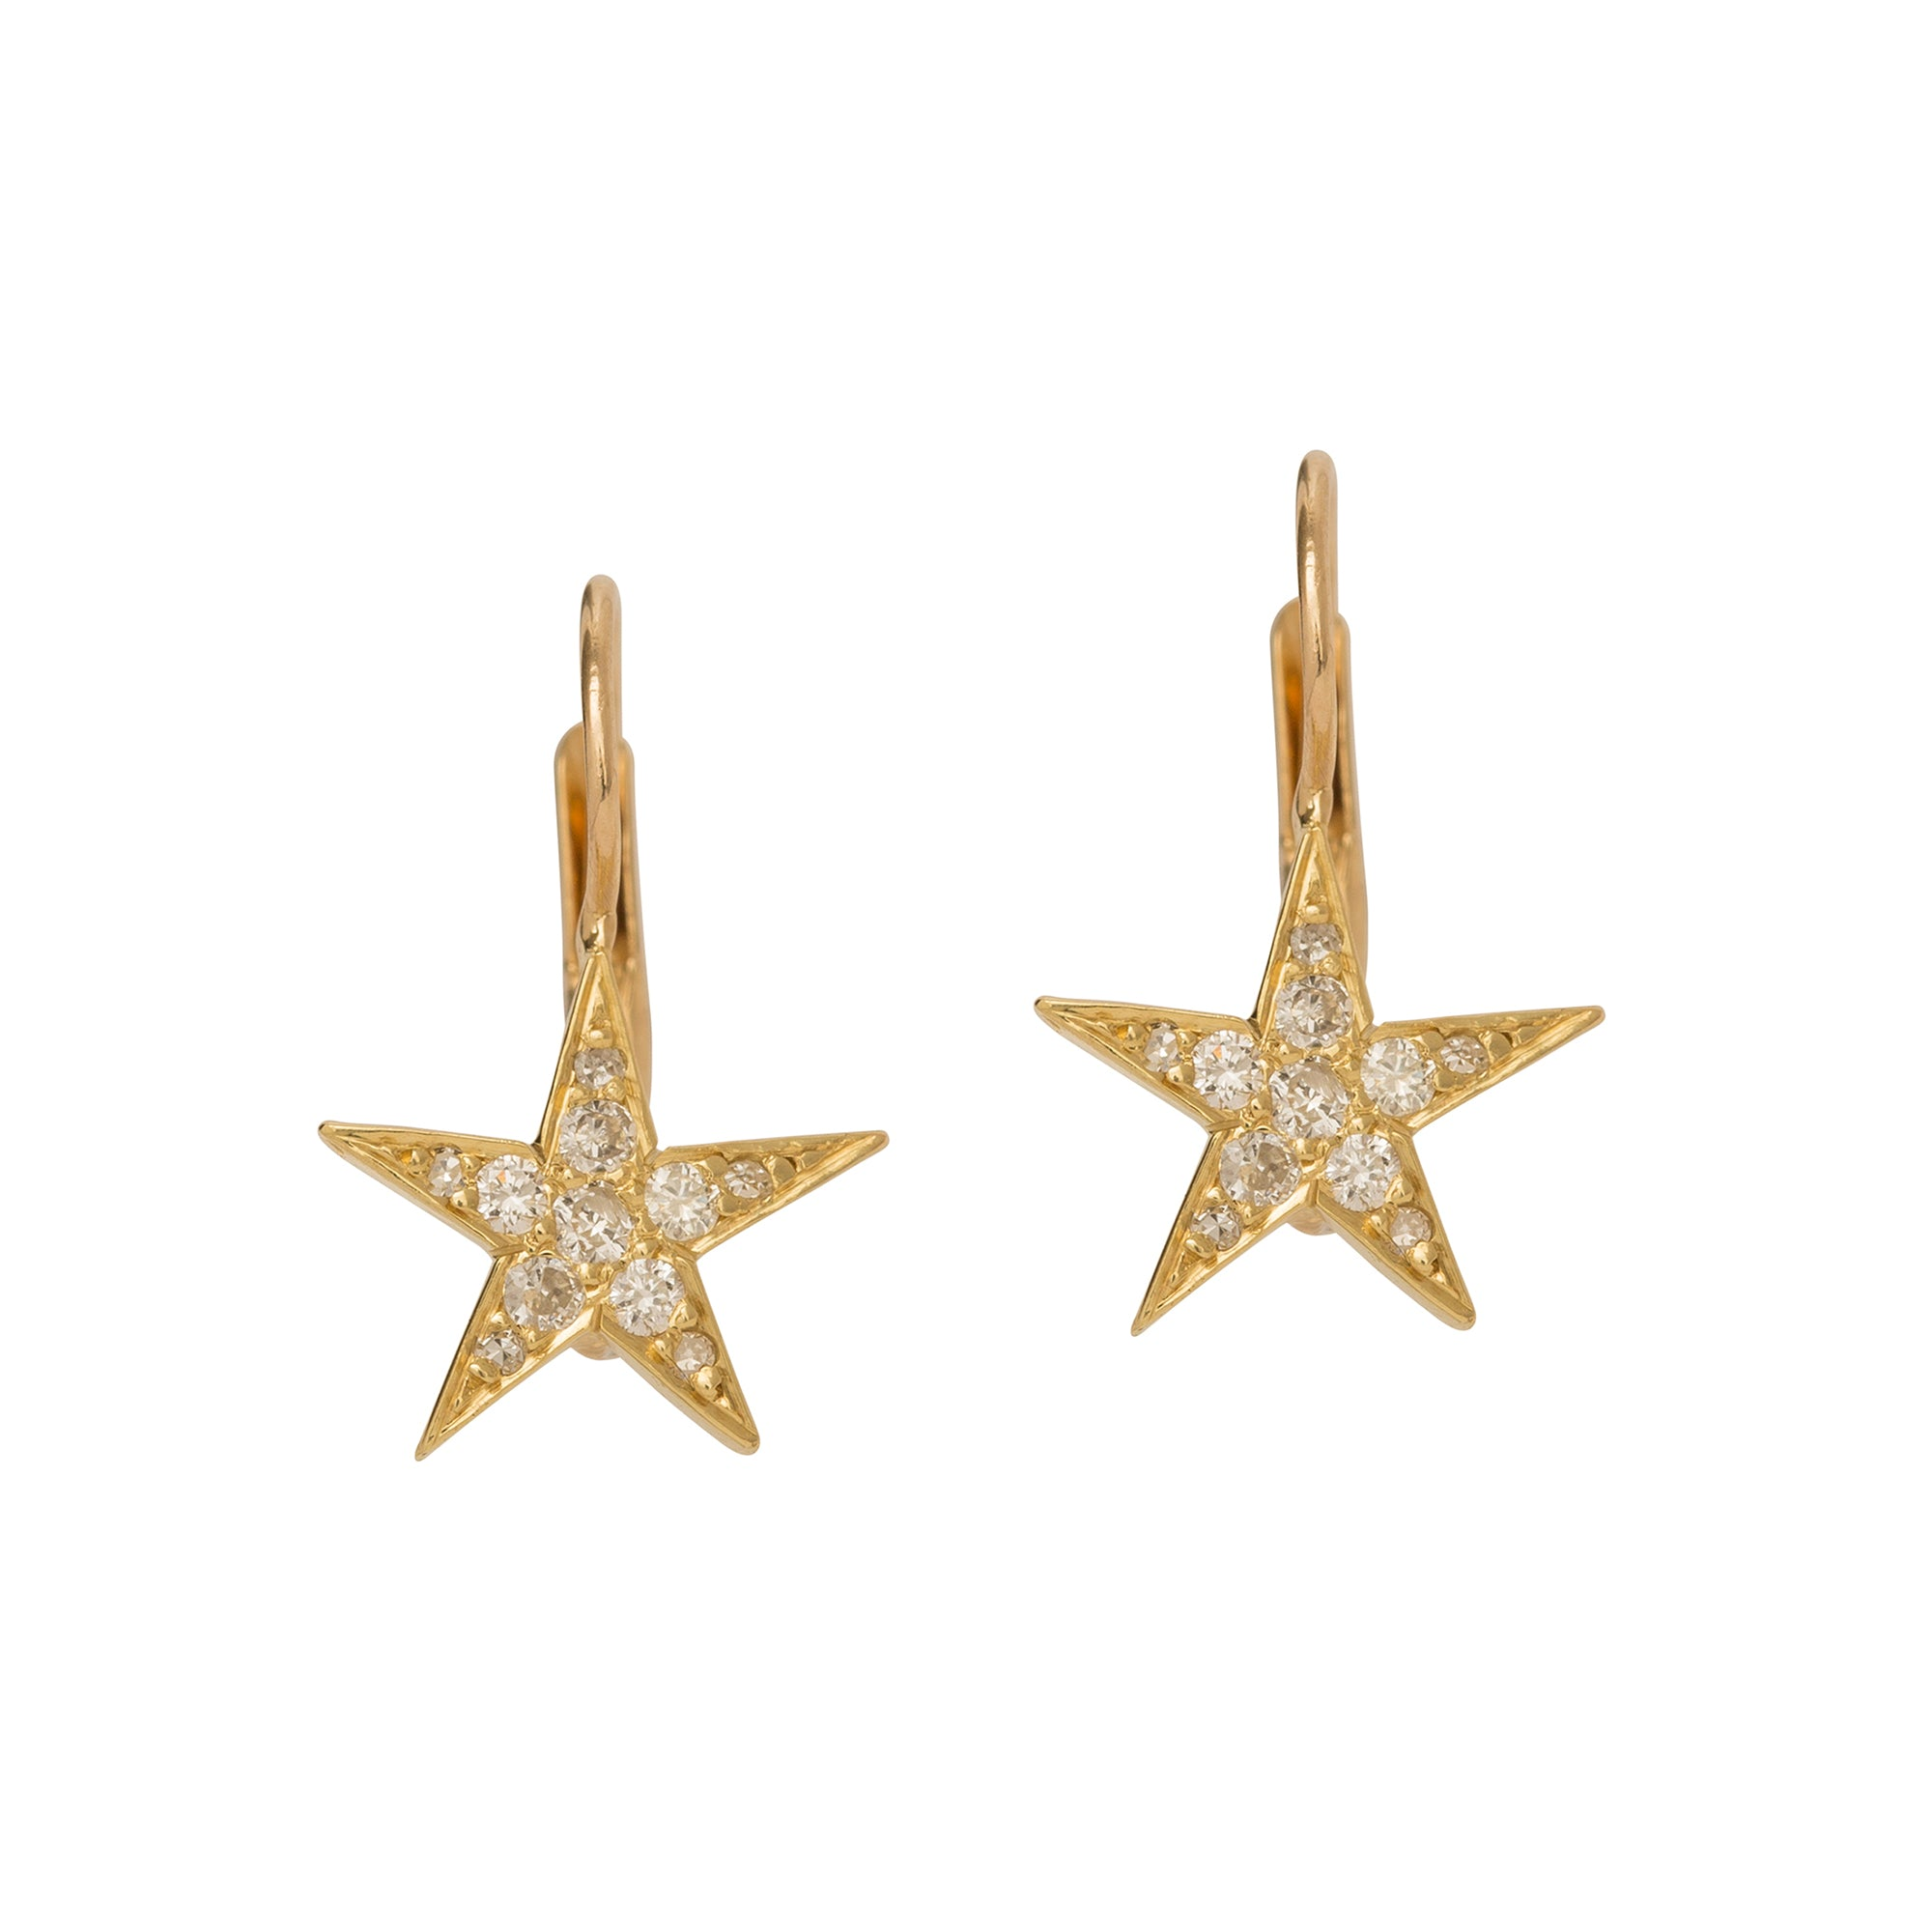 Estate Petite Diamond Star Earrings by Broken English Jewelry